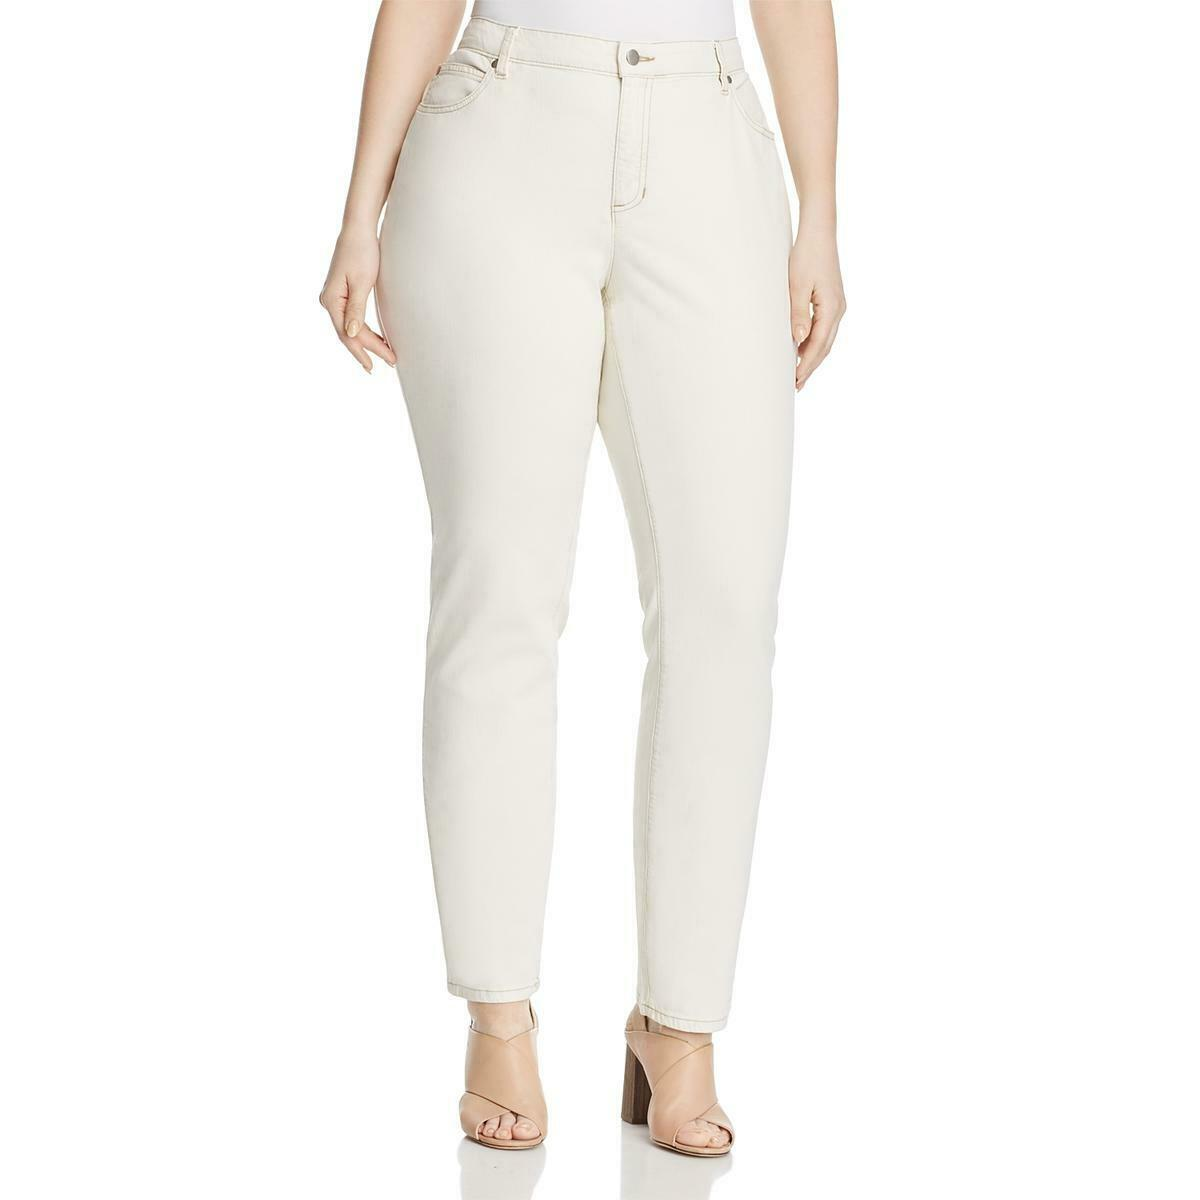 Eileen Fisher Womens Ivory Organic Cotton Skinny Jeans Plus 18W BHFO 9587